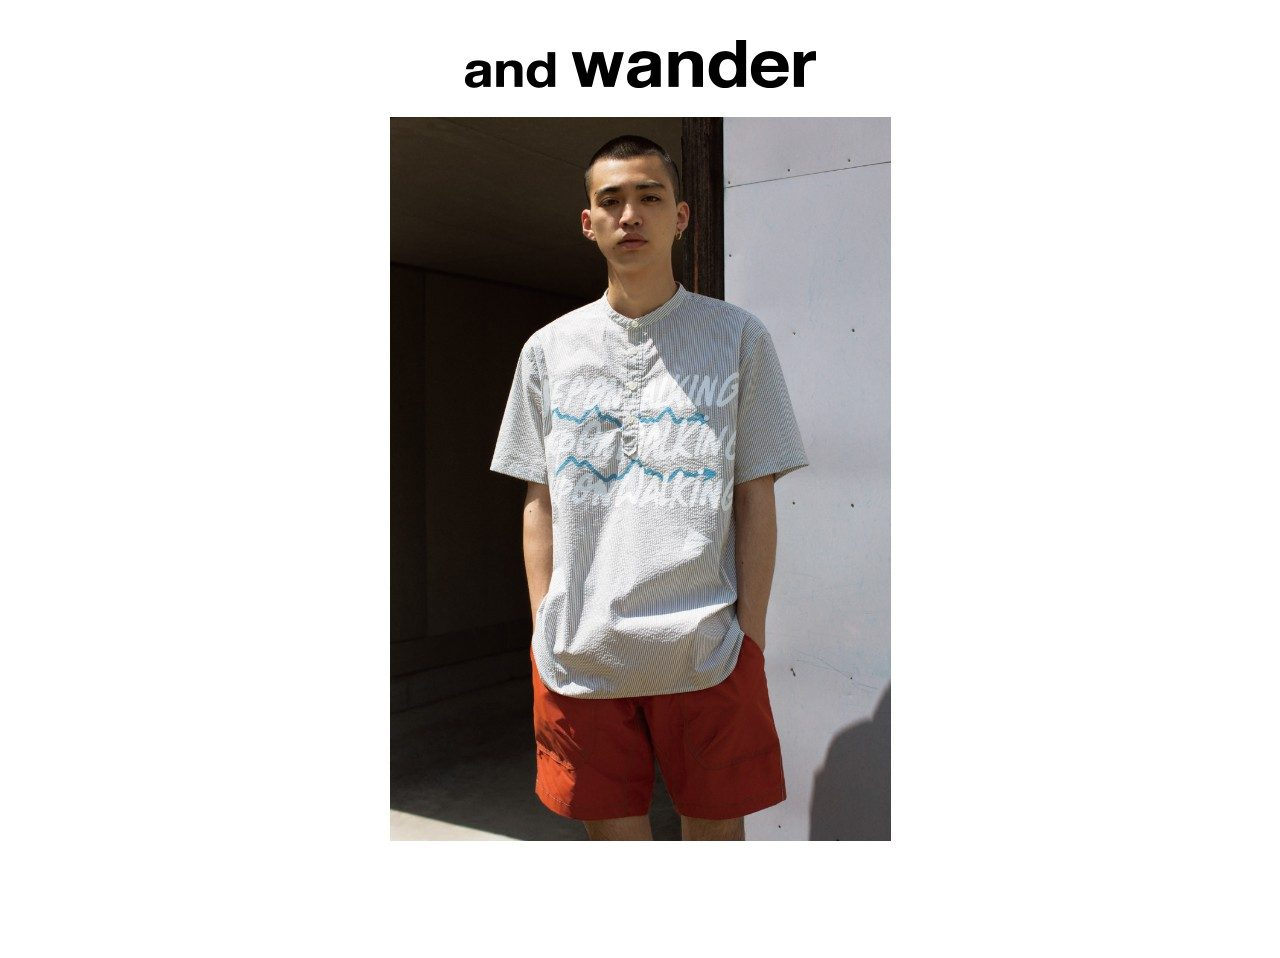 And wander is a men's contemporary fashion and streetwear brand based in Tokyo (Japan) launched in Spring-Summer 2011.